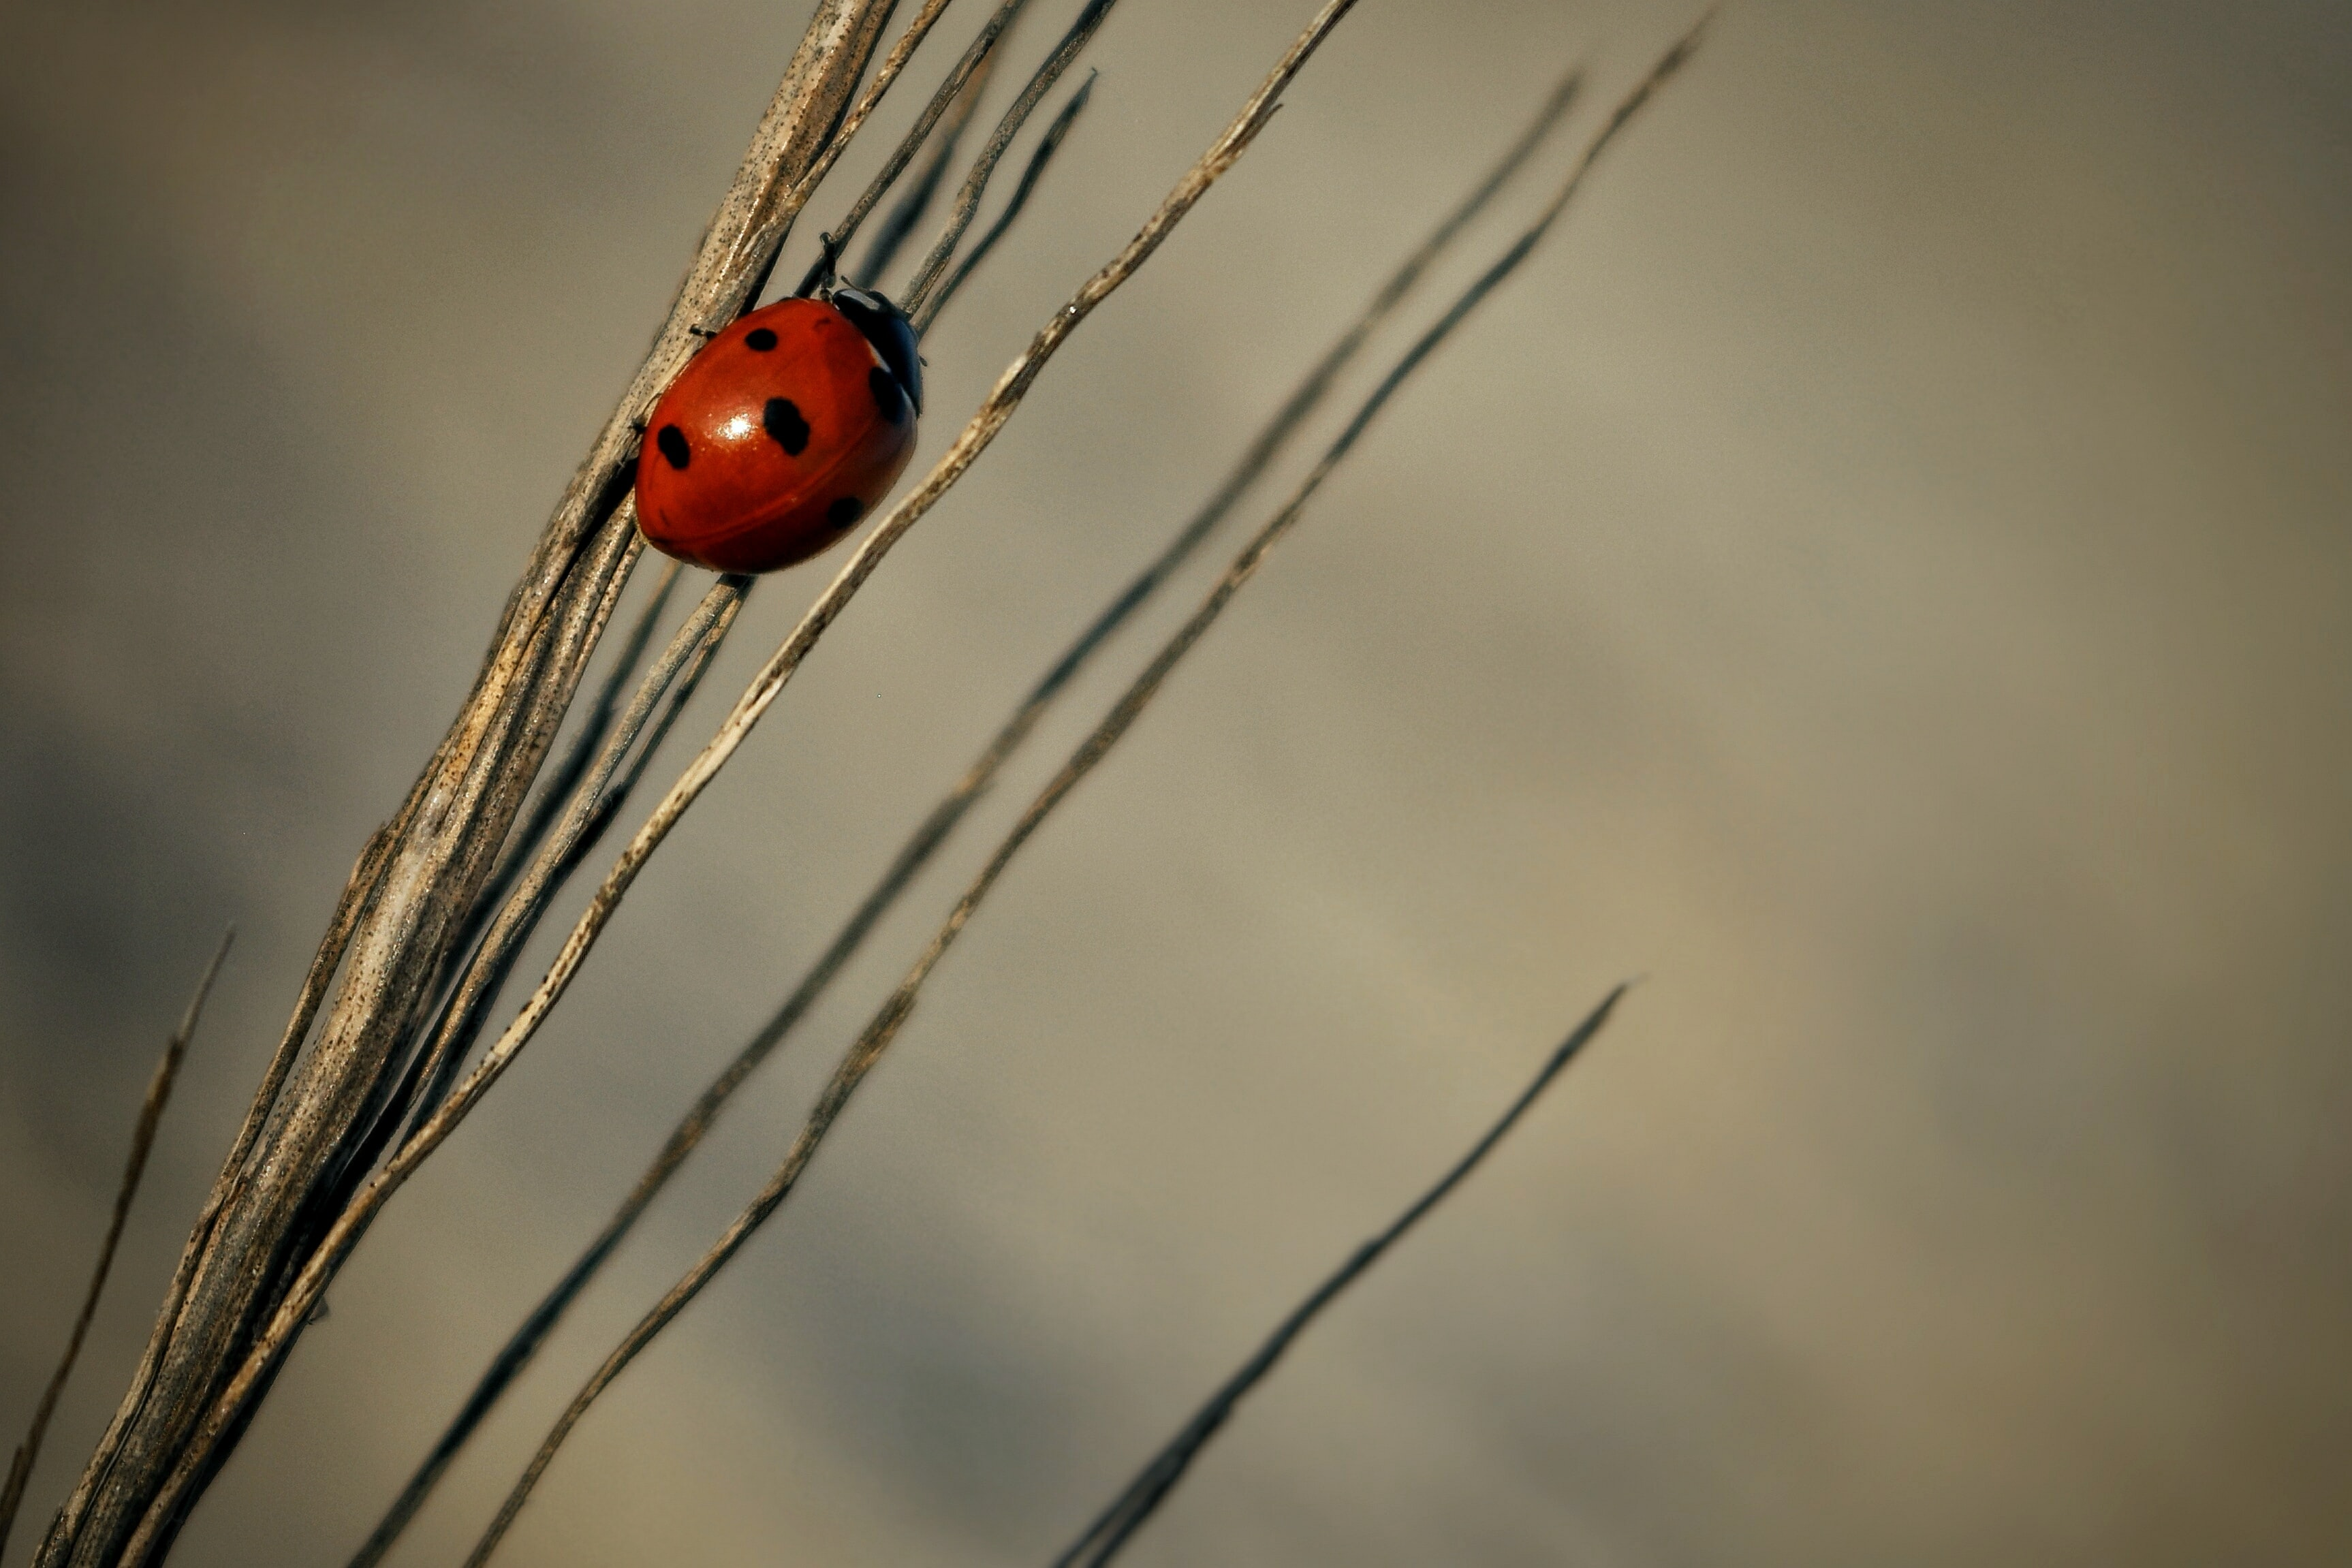 close-up photography of ladybird on grass